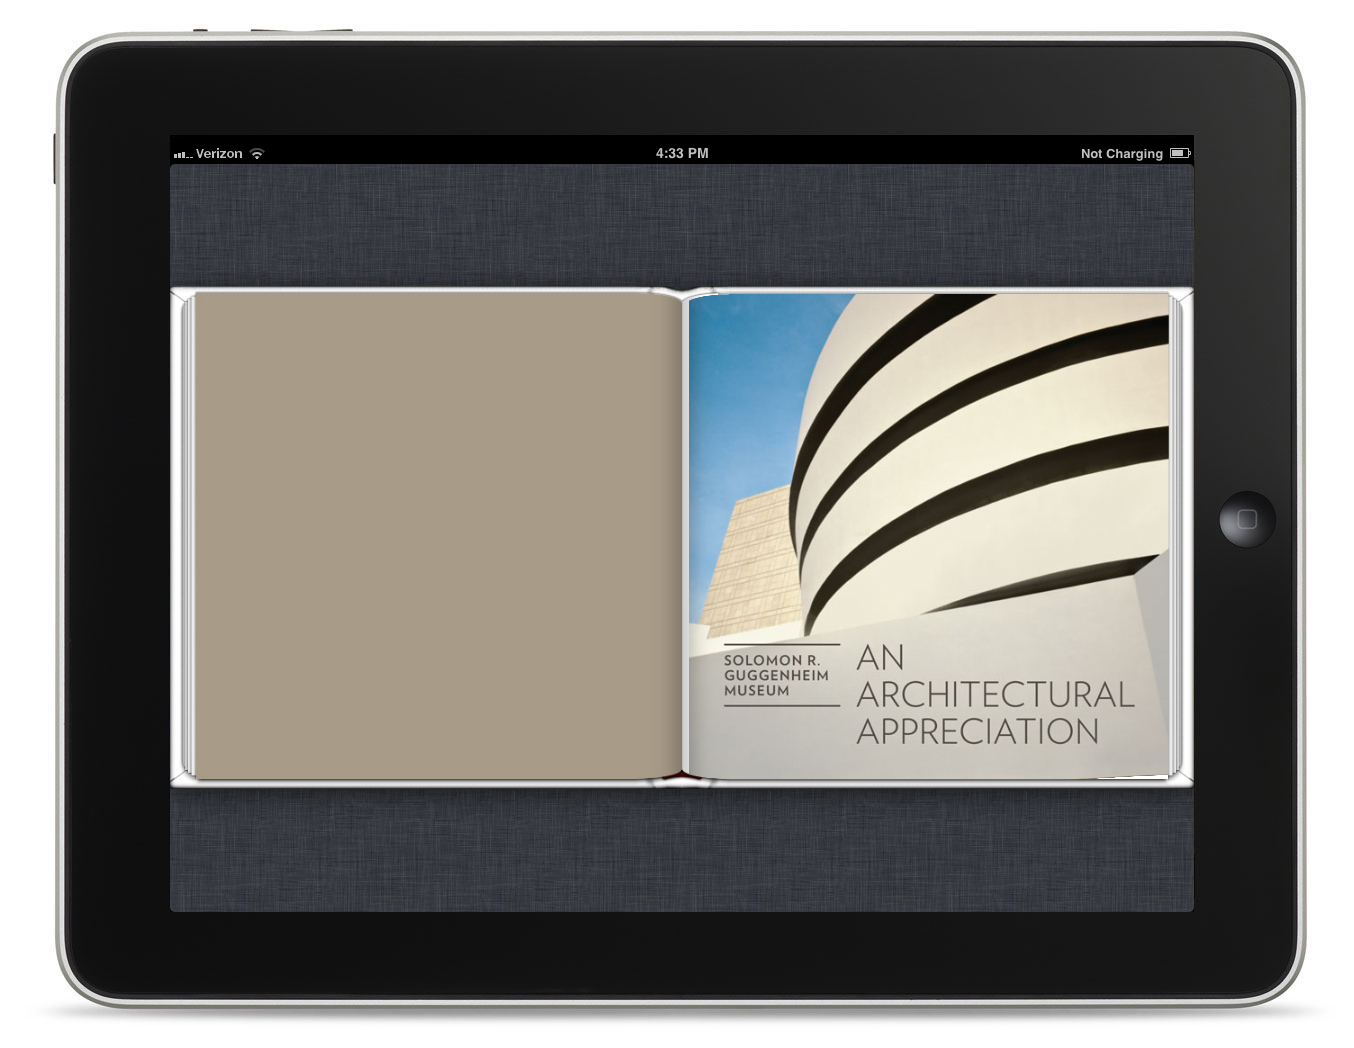 Solomon R. Guggenheim Museum: An Architectural Appreciation Guggenheim Museum Available for iPad.  In 1943, Frank Lloyd Wright received a letter from Hilla Rebay, the art advisor to Solomon R. Guggenheim, asking the architect to design a new building to house Guggenheim